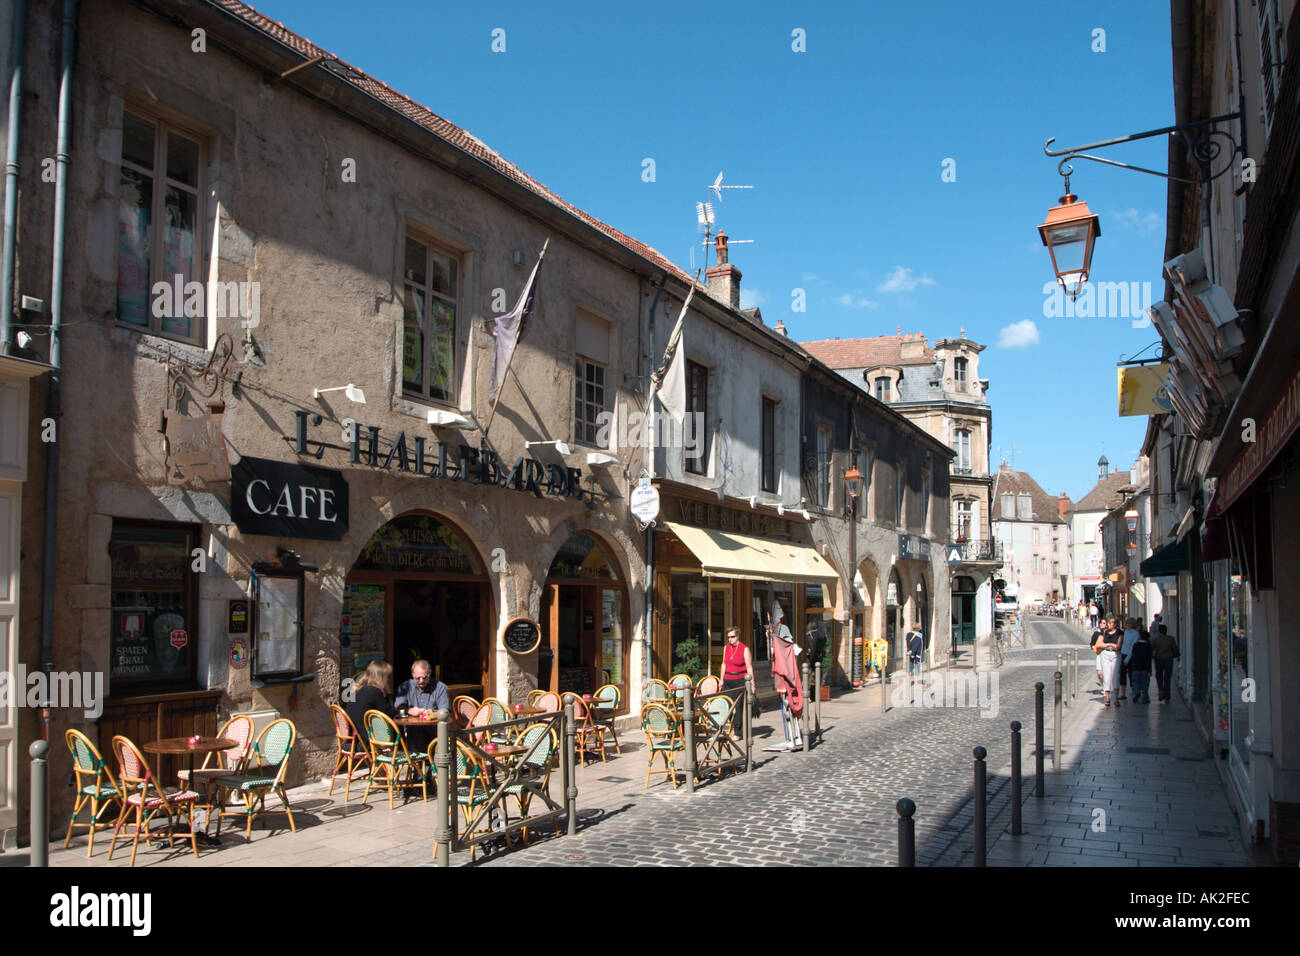 Sidewalk cafe in the Old Town, Beaune, Cote d'Or, Burgundy, France - Stock Image